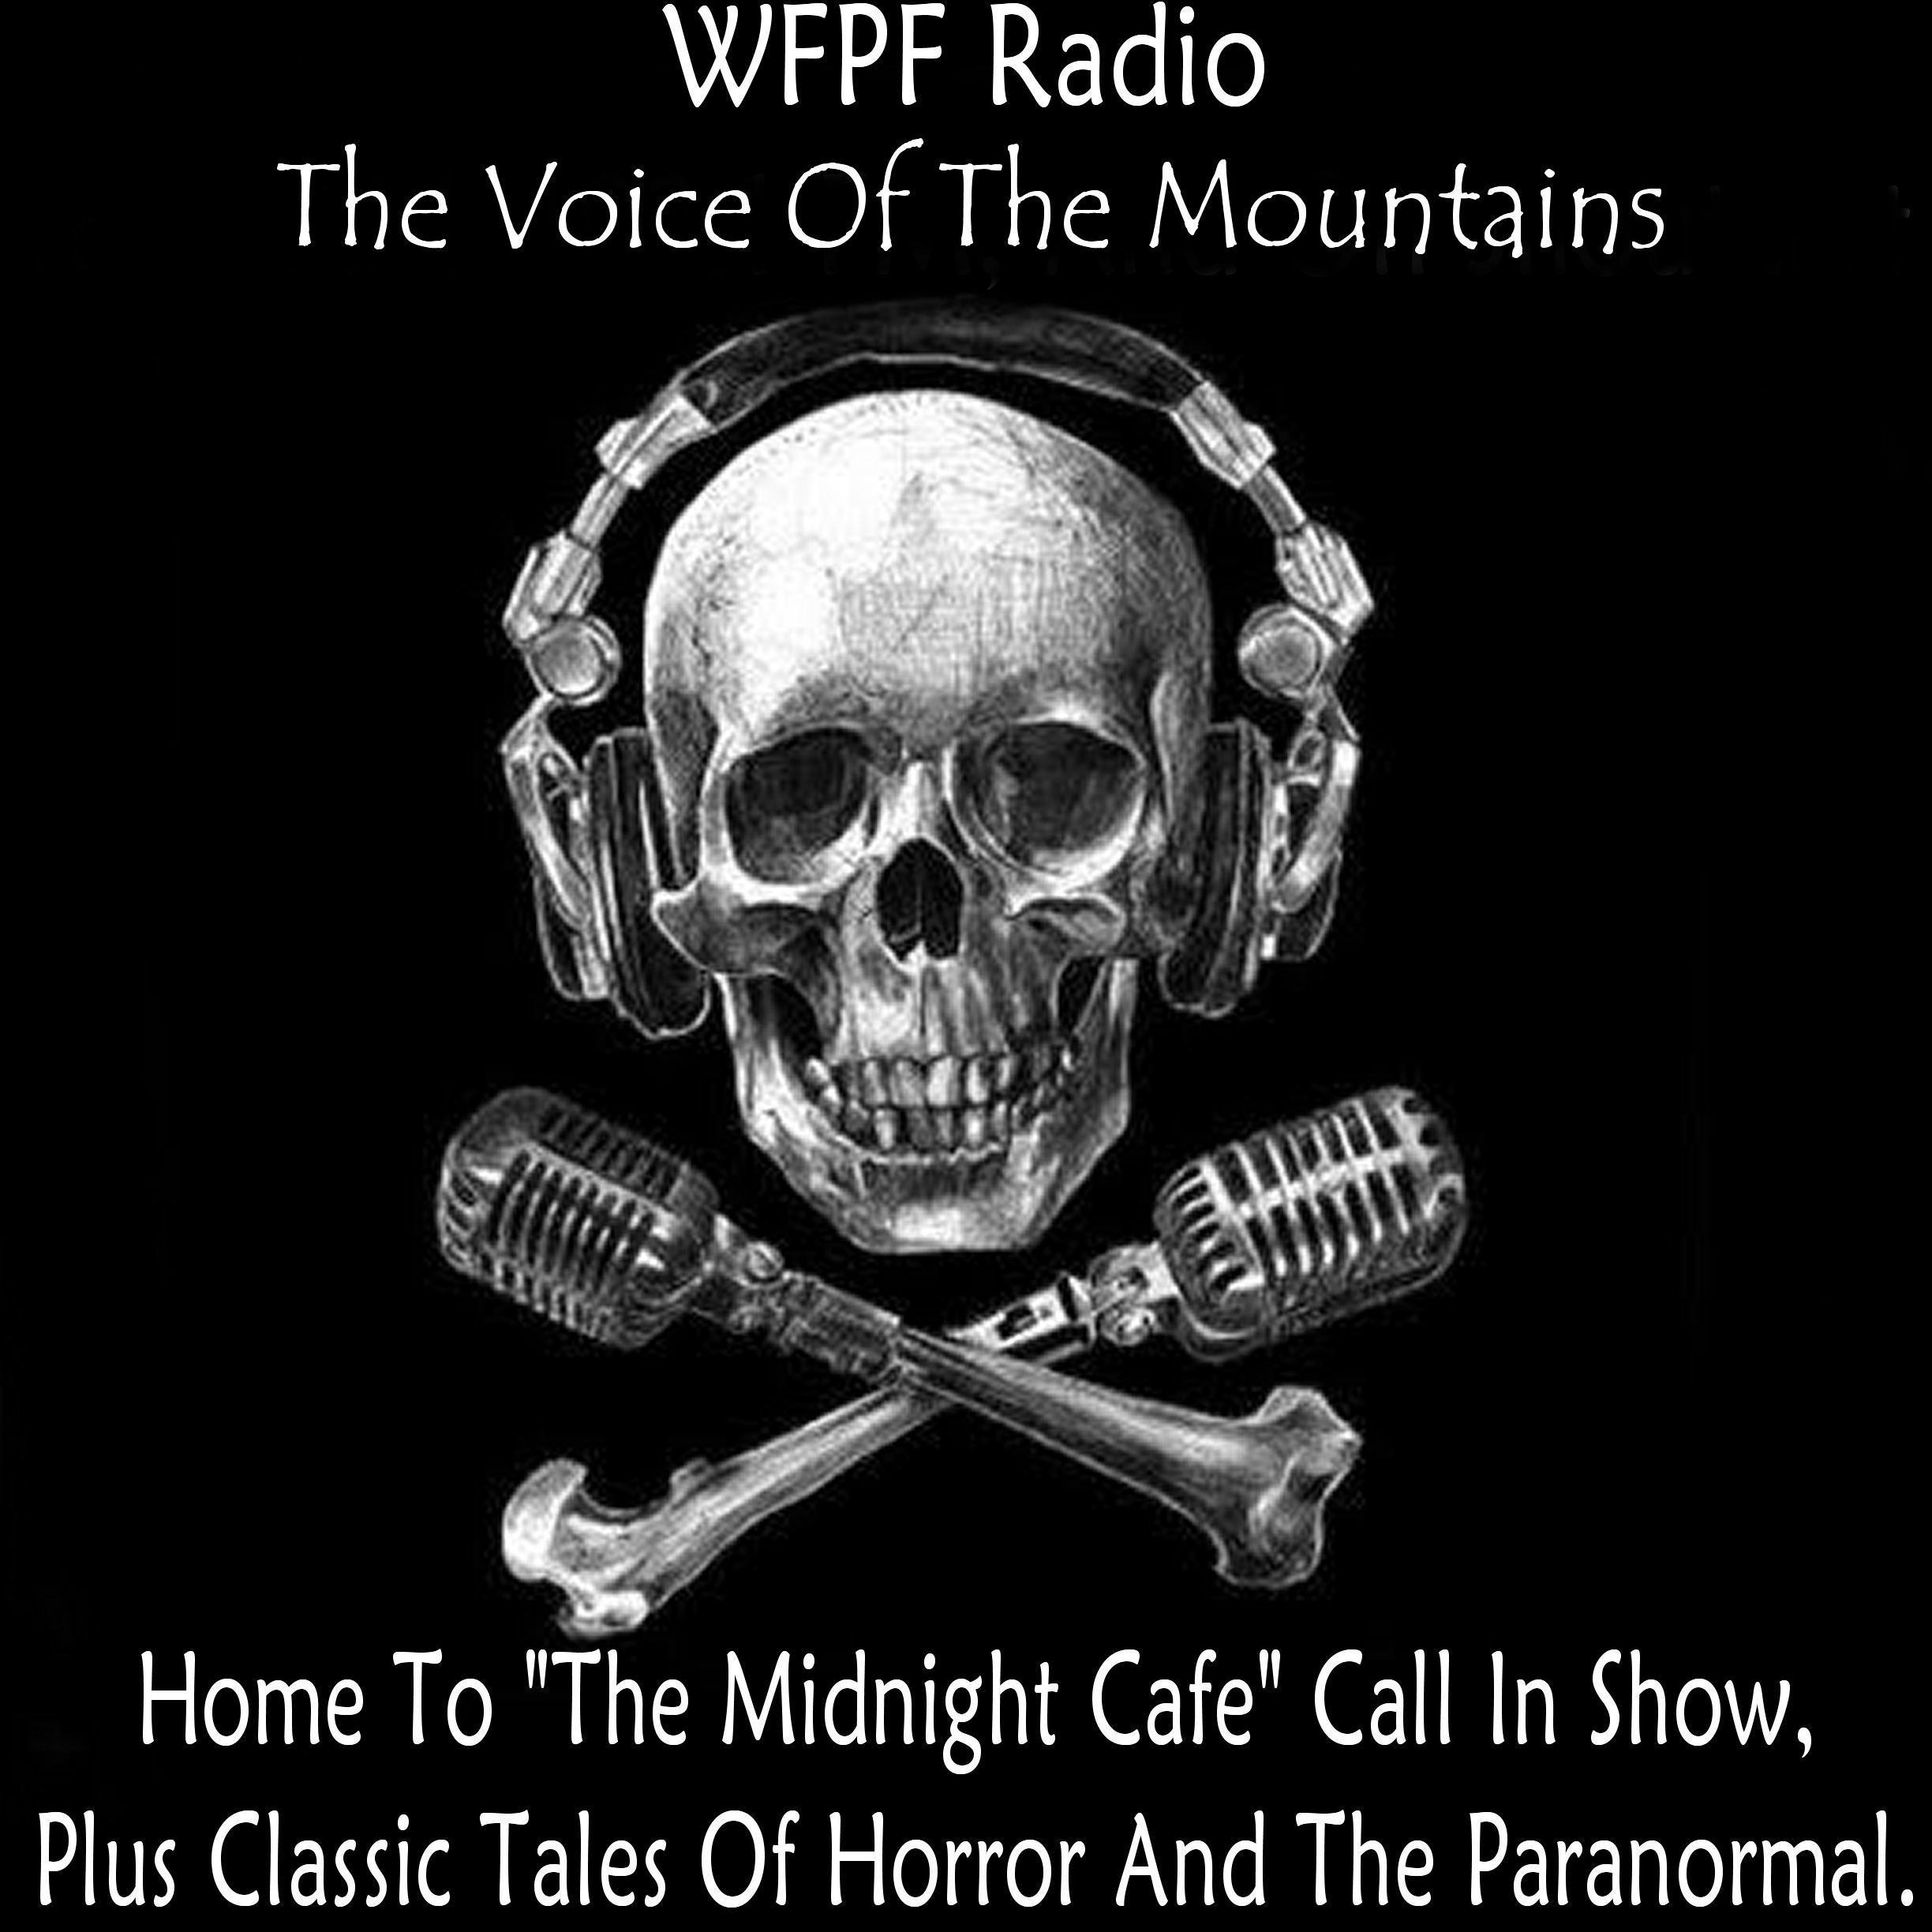 WFPF Radio, The Voice Of The Mountains.